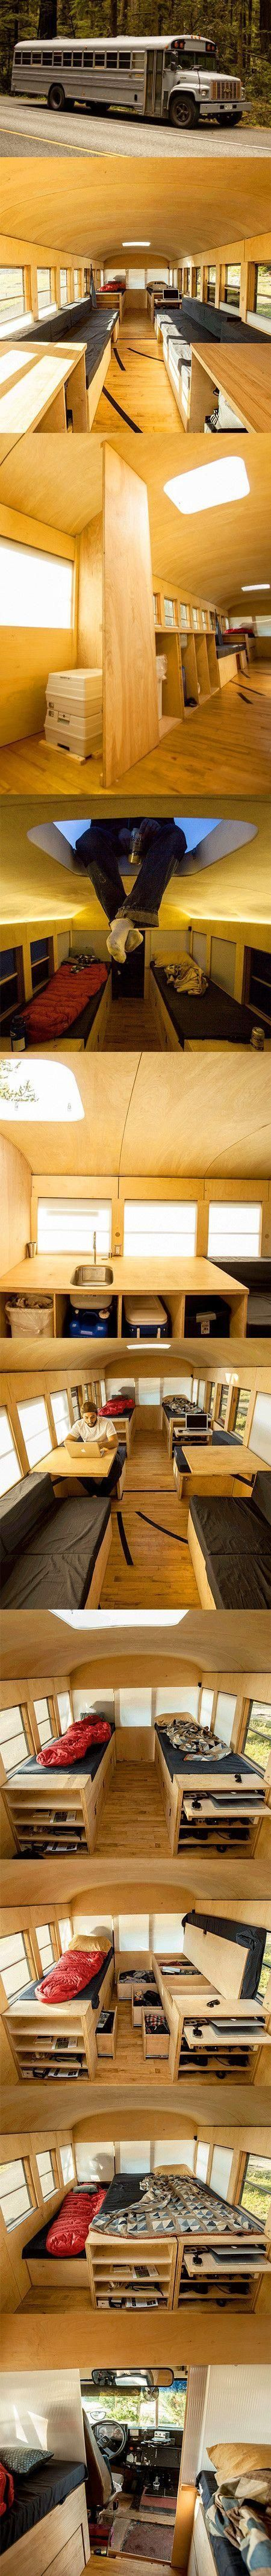 Architecture student Hank Butitta converted old school bus into a 225 square foot mobile home with small kitchen, living room, and bedroom.: